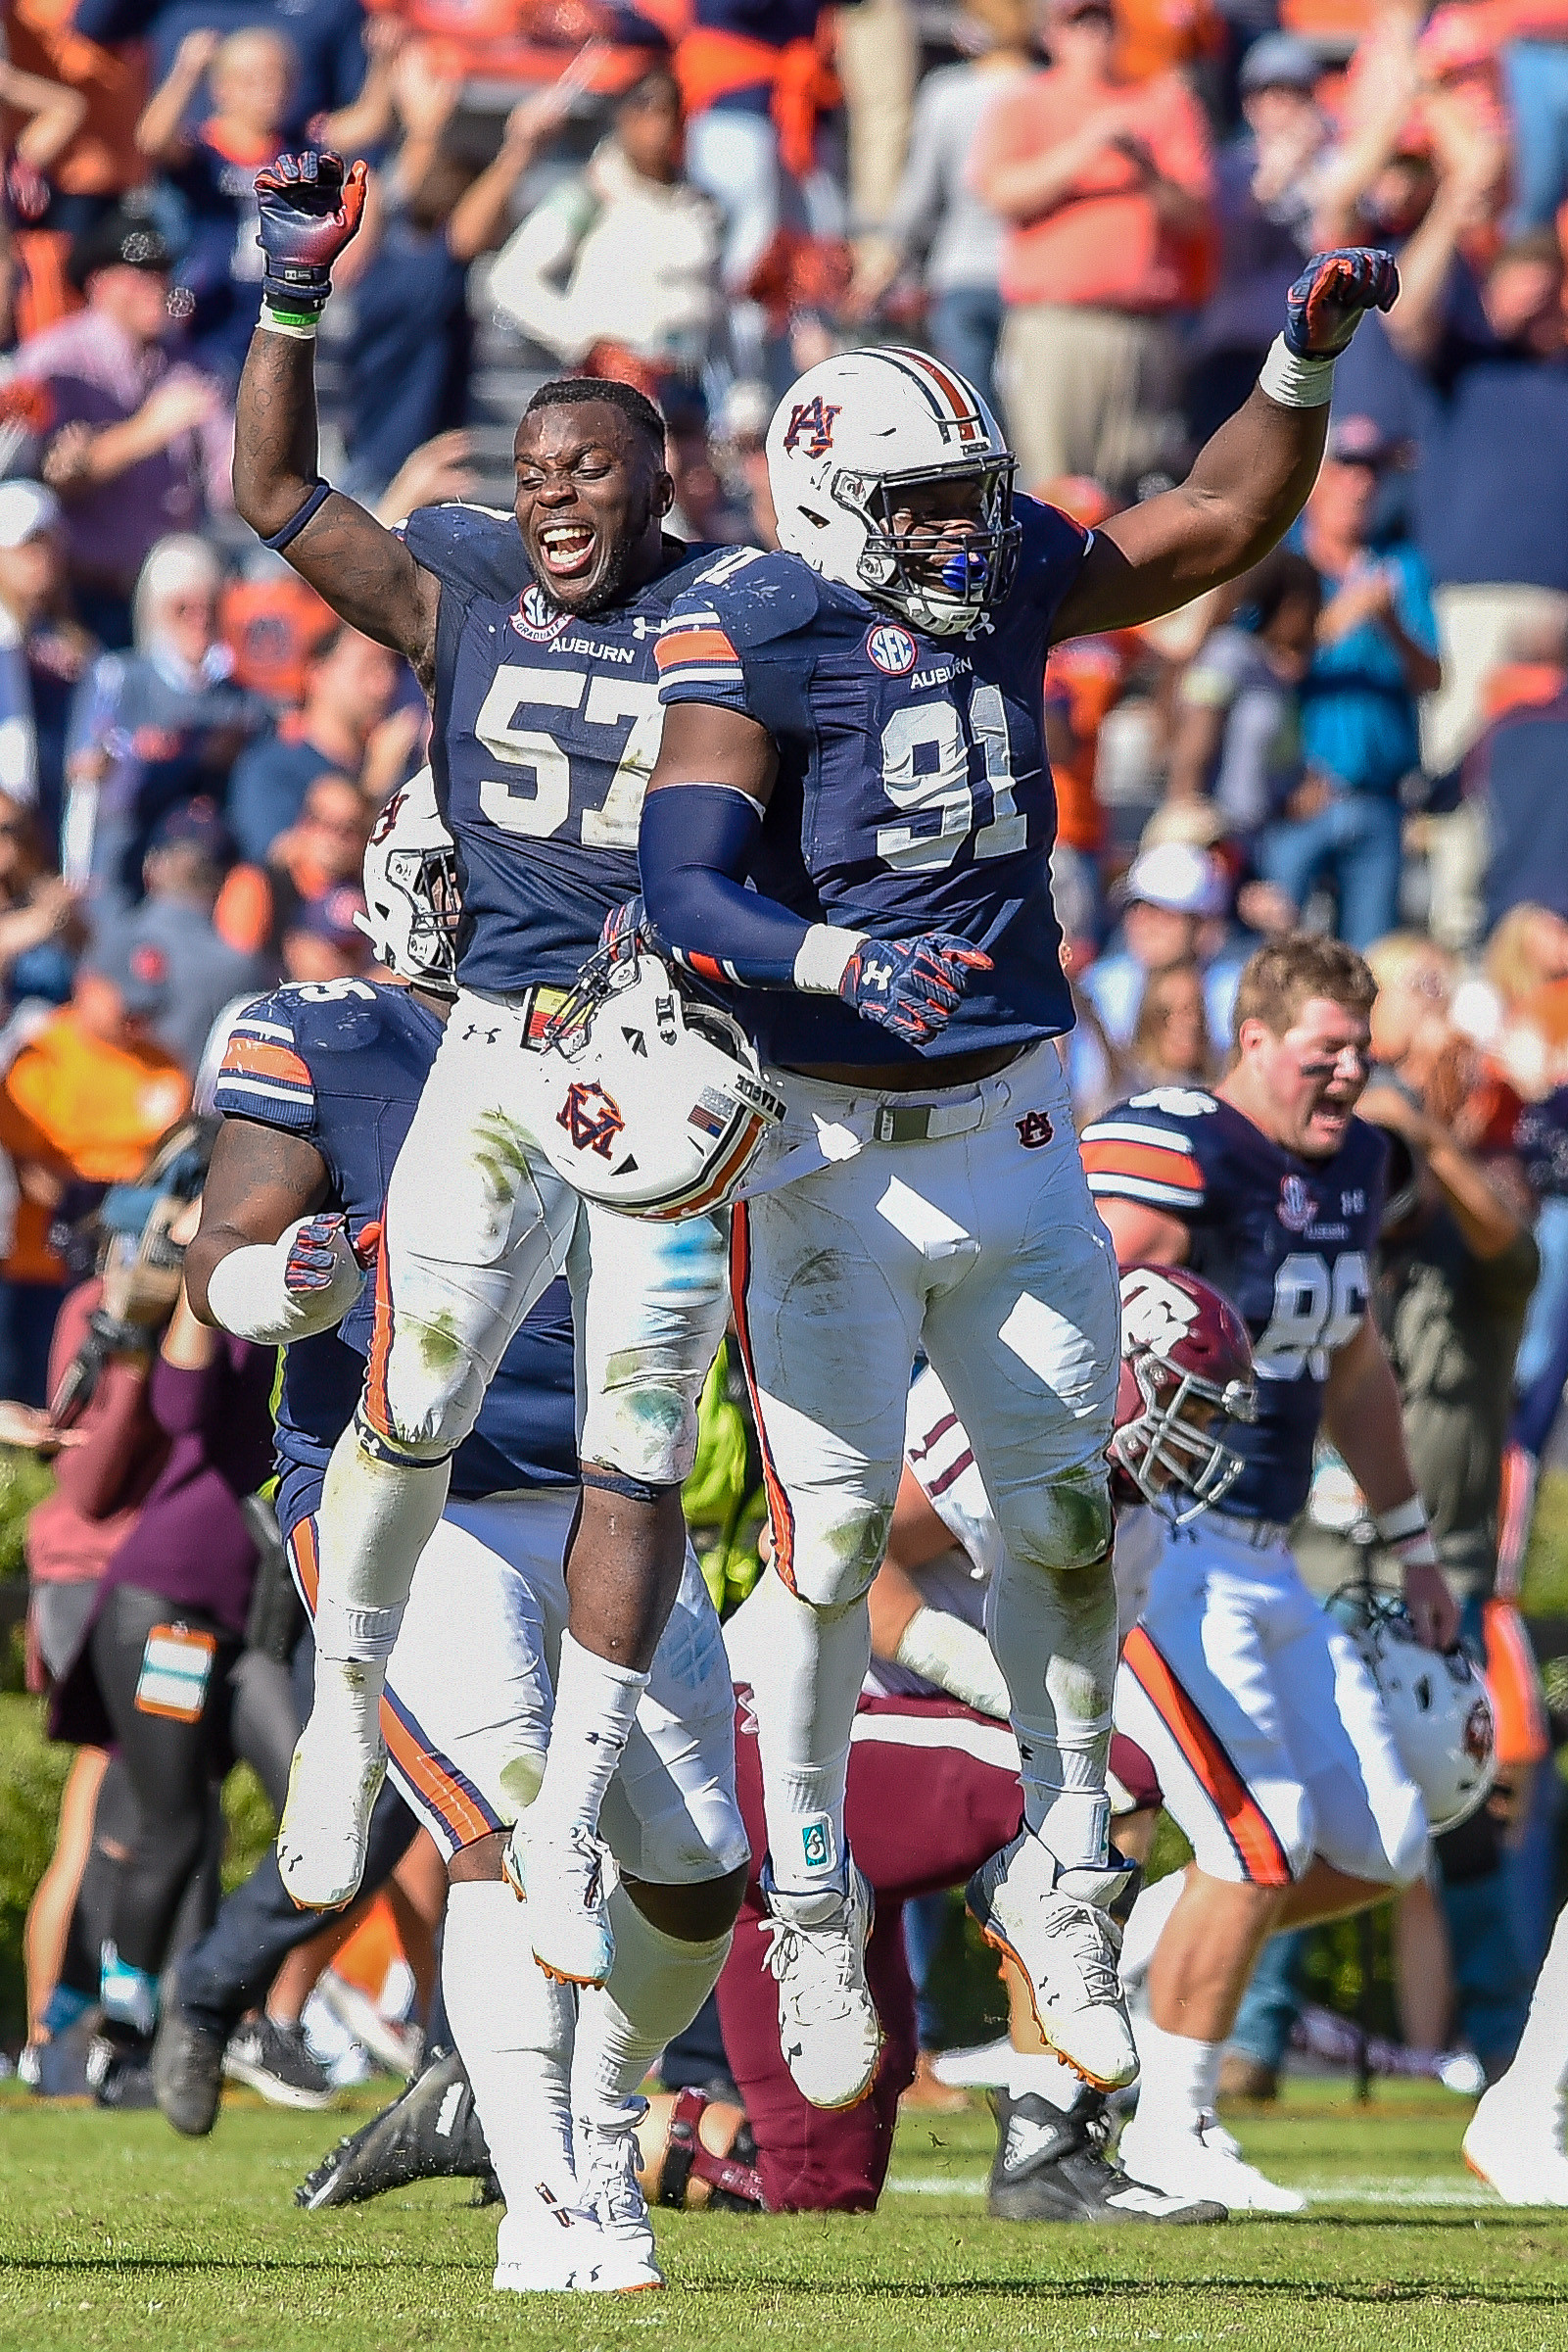 Auburn Tigers linebacker Deshaun Davis (57) and defensive lineman Nick Coe (91) celebrate after time expires of an NCAA football game against the Texas A&M Aggies Saturday, November 3, 2018, at Jordan-Hare Stadium in Auburn, Ala. (Photo by Jeff Johnsey)